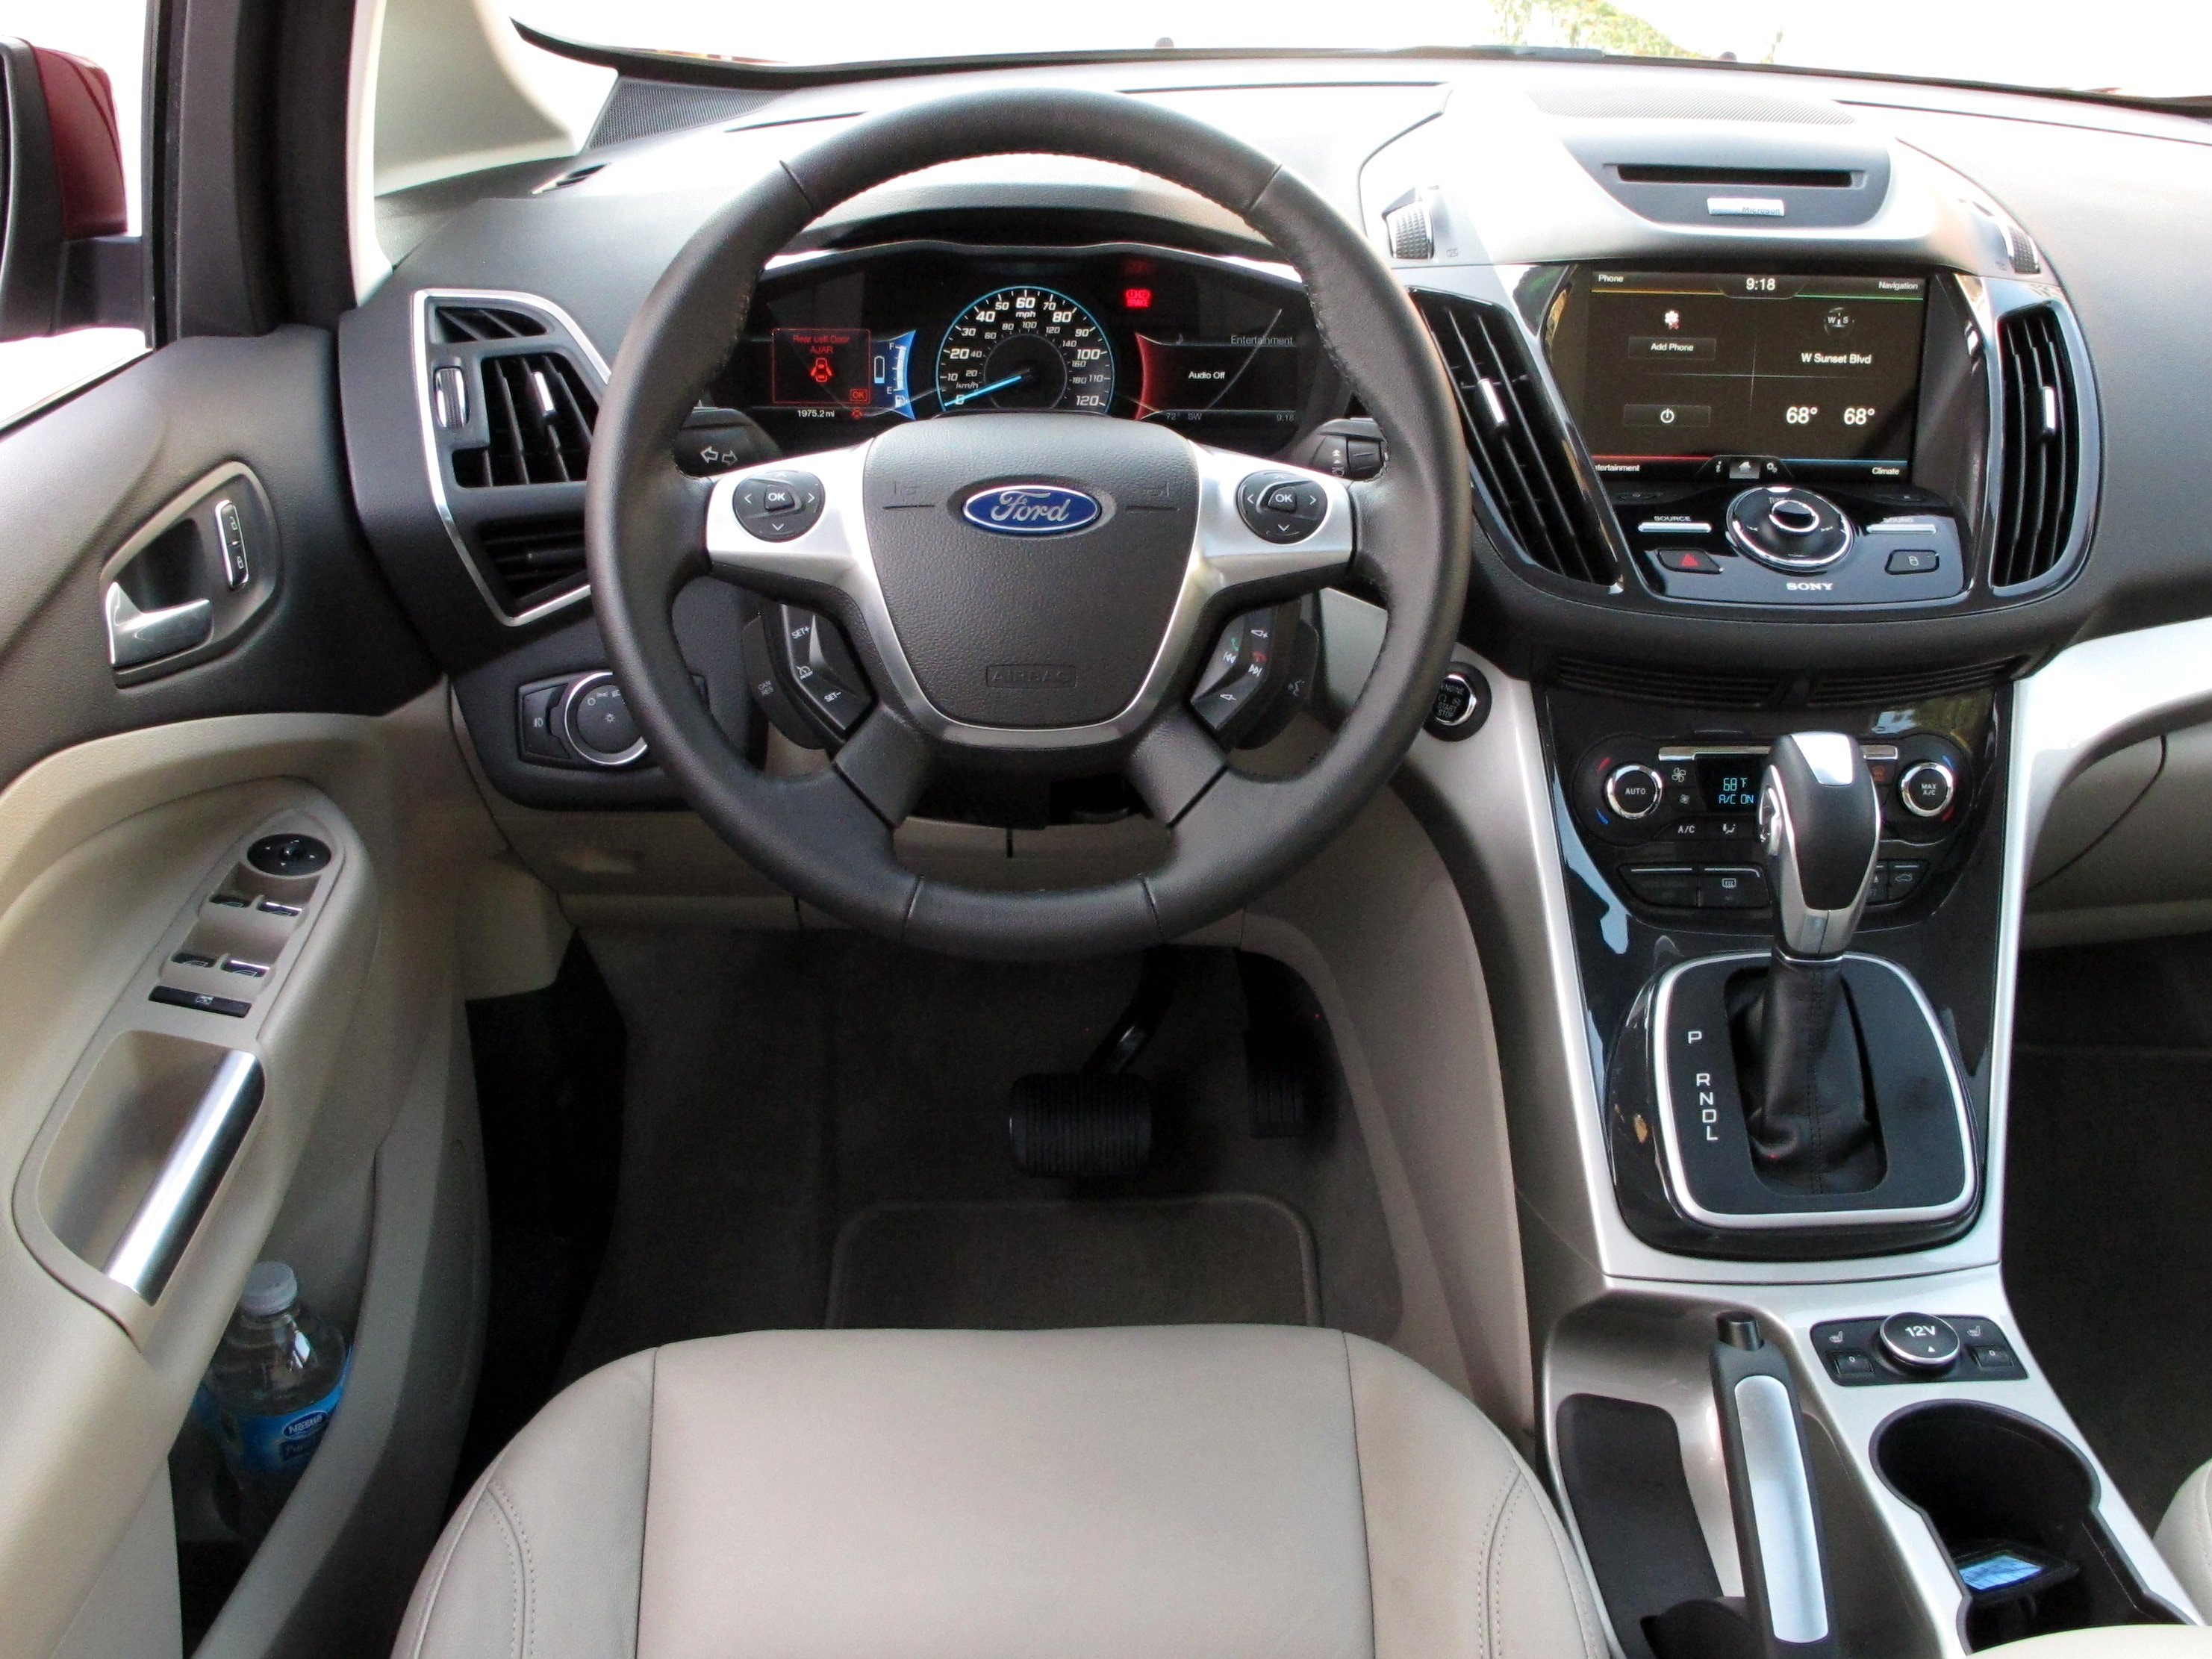 2013 Ford C-MAX #6